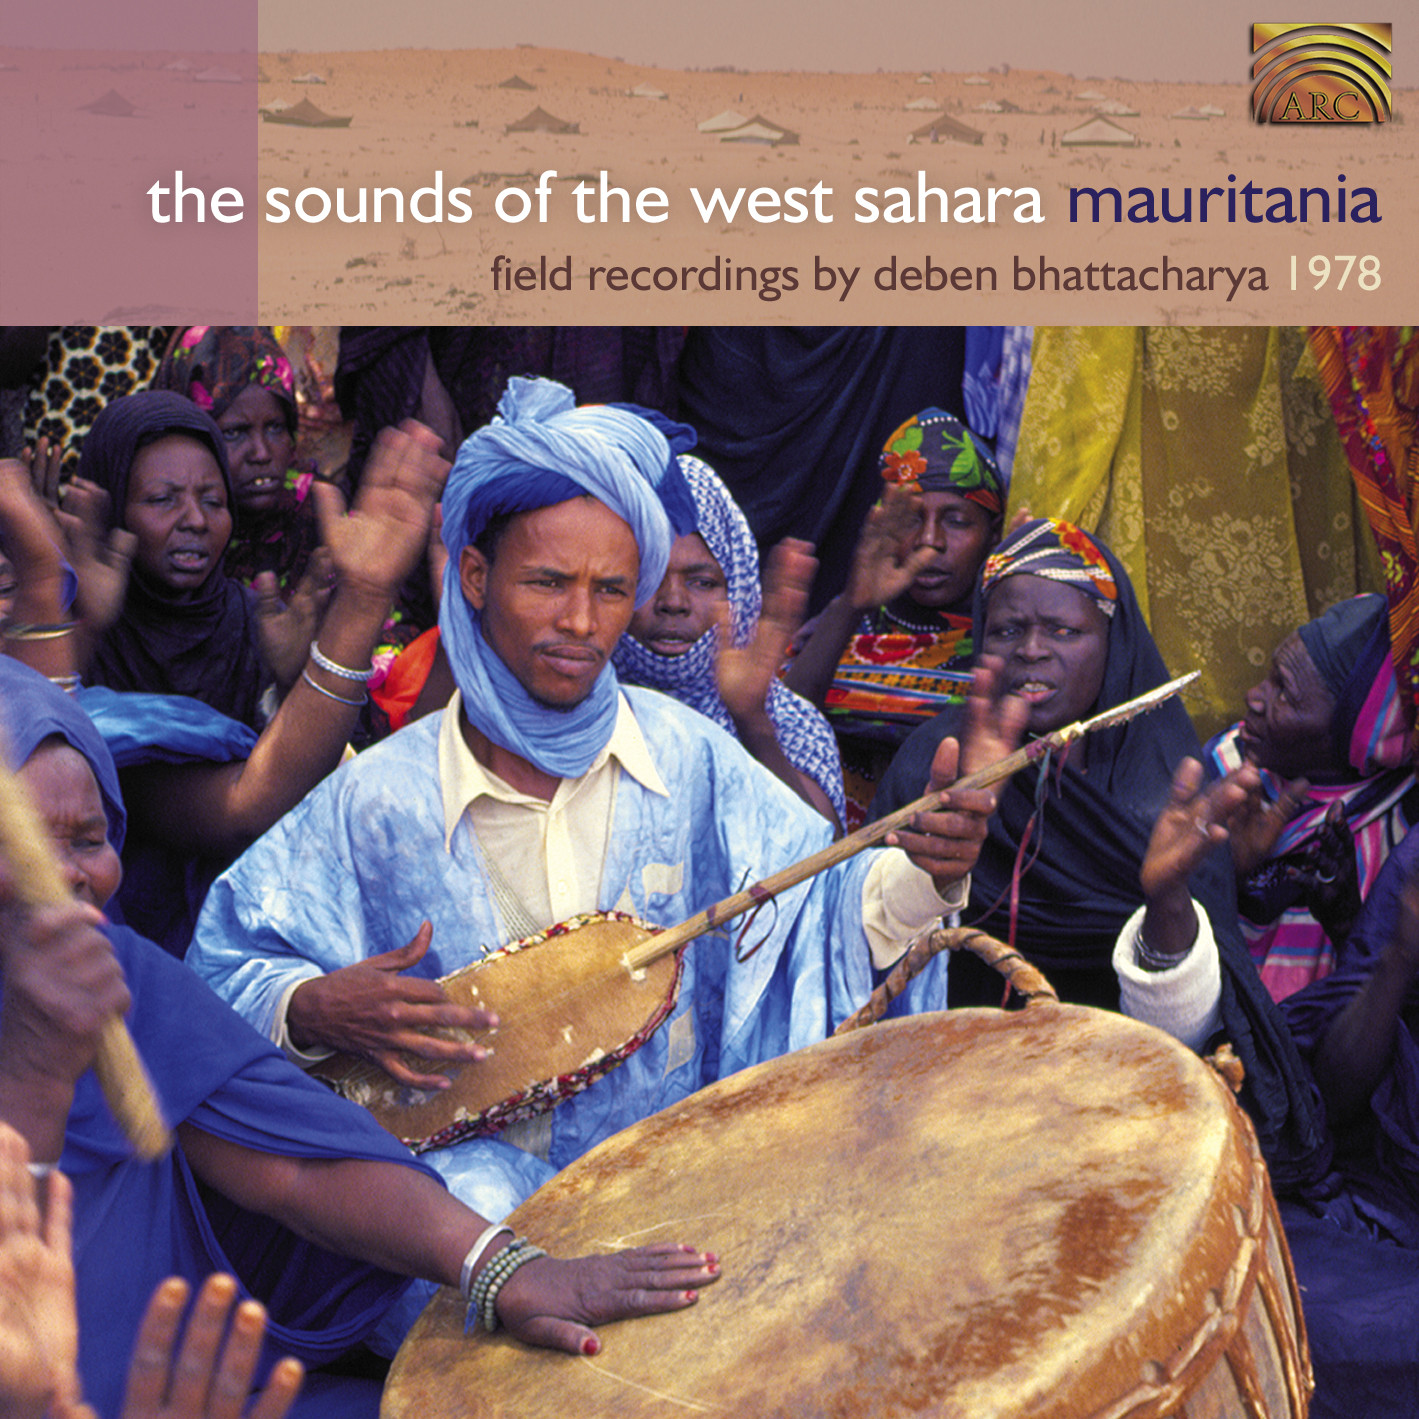 EUCD1870 Sounds of the West Sahara - Mauritania - Field recordings by Deben Bhattacharya